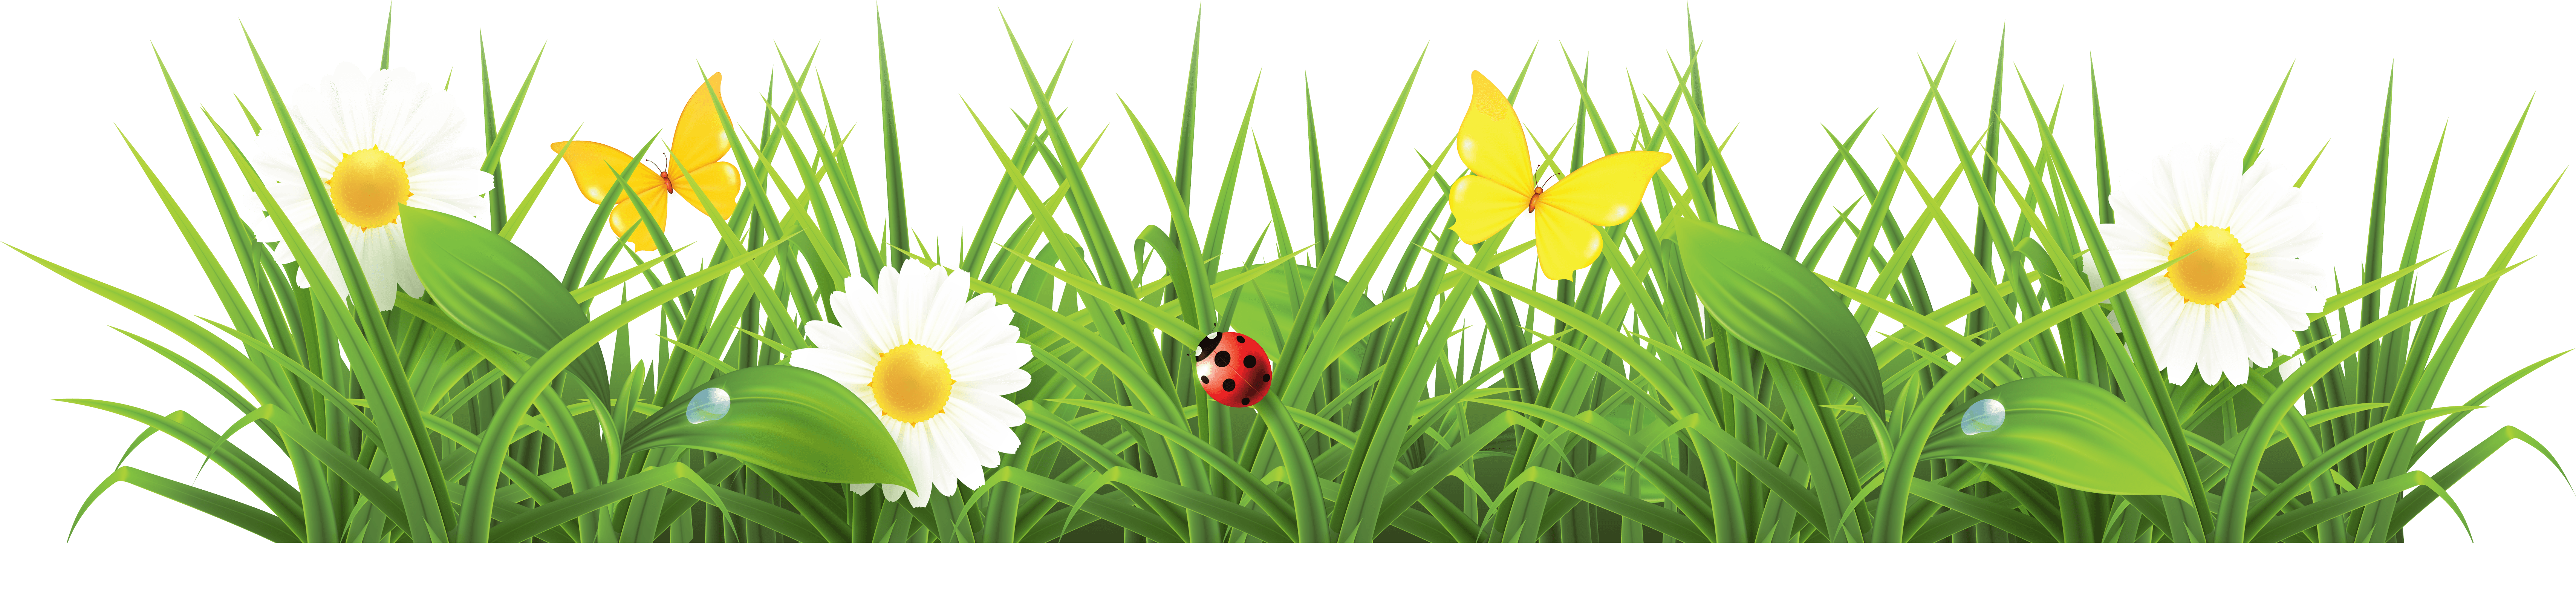 Grass Png & Free Grass png Transparent Images #222 - PNGio